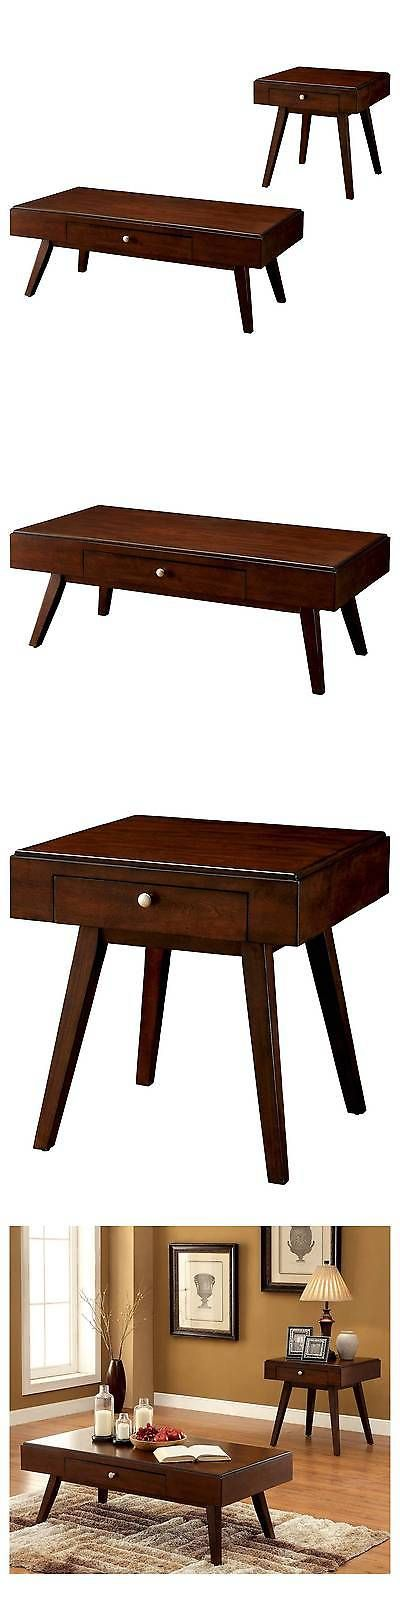 Sets 98478: Occasional Table Set Burgundy Brown - Furniture Of America BUY IT NOW ONLY: $549.99